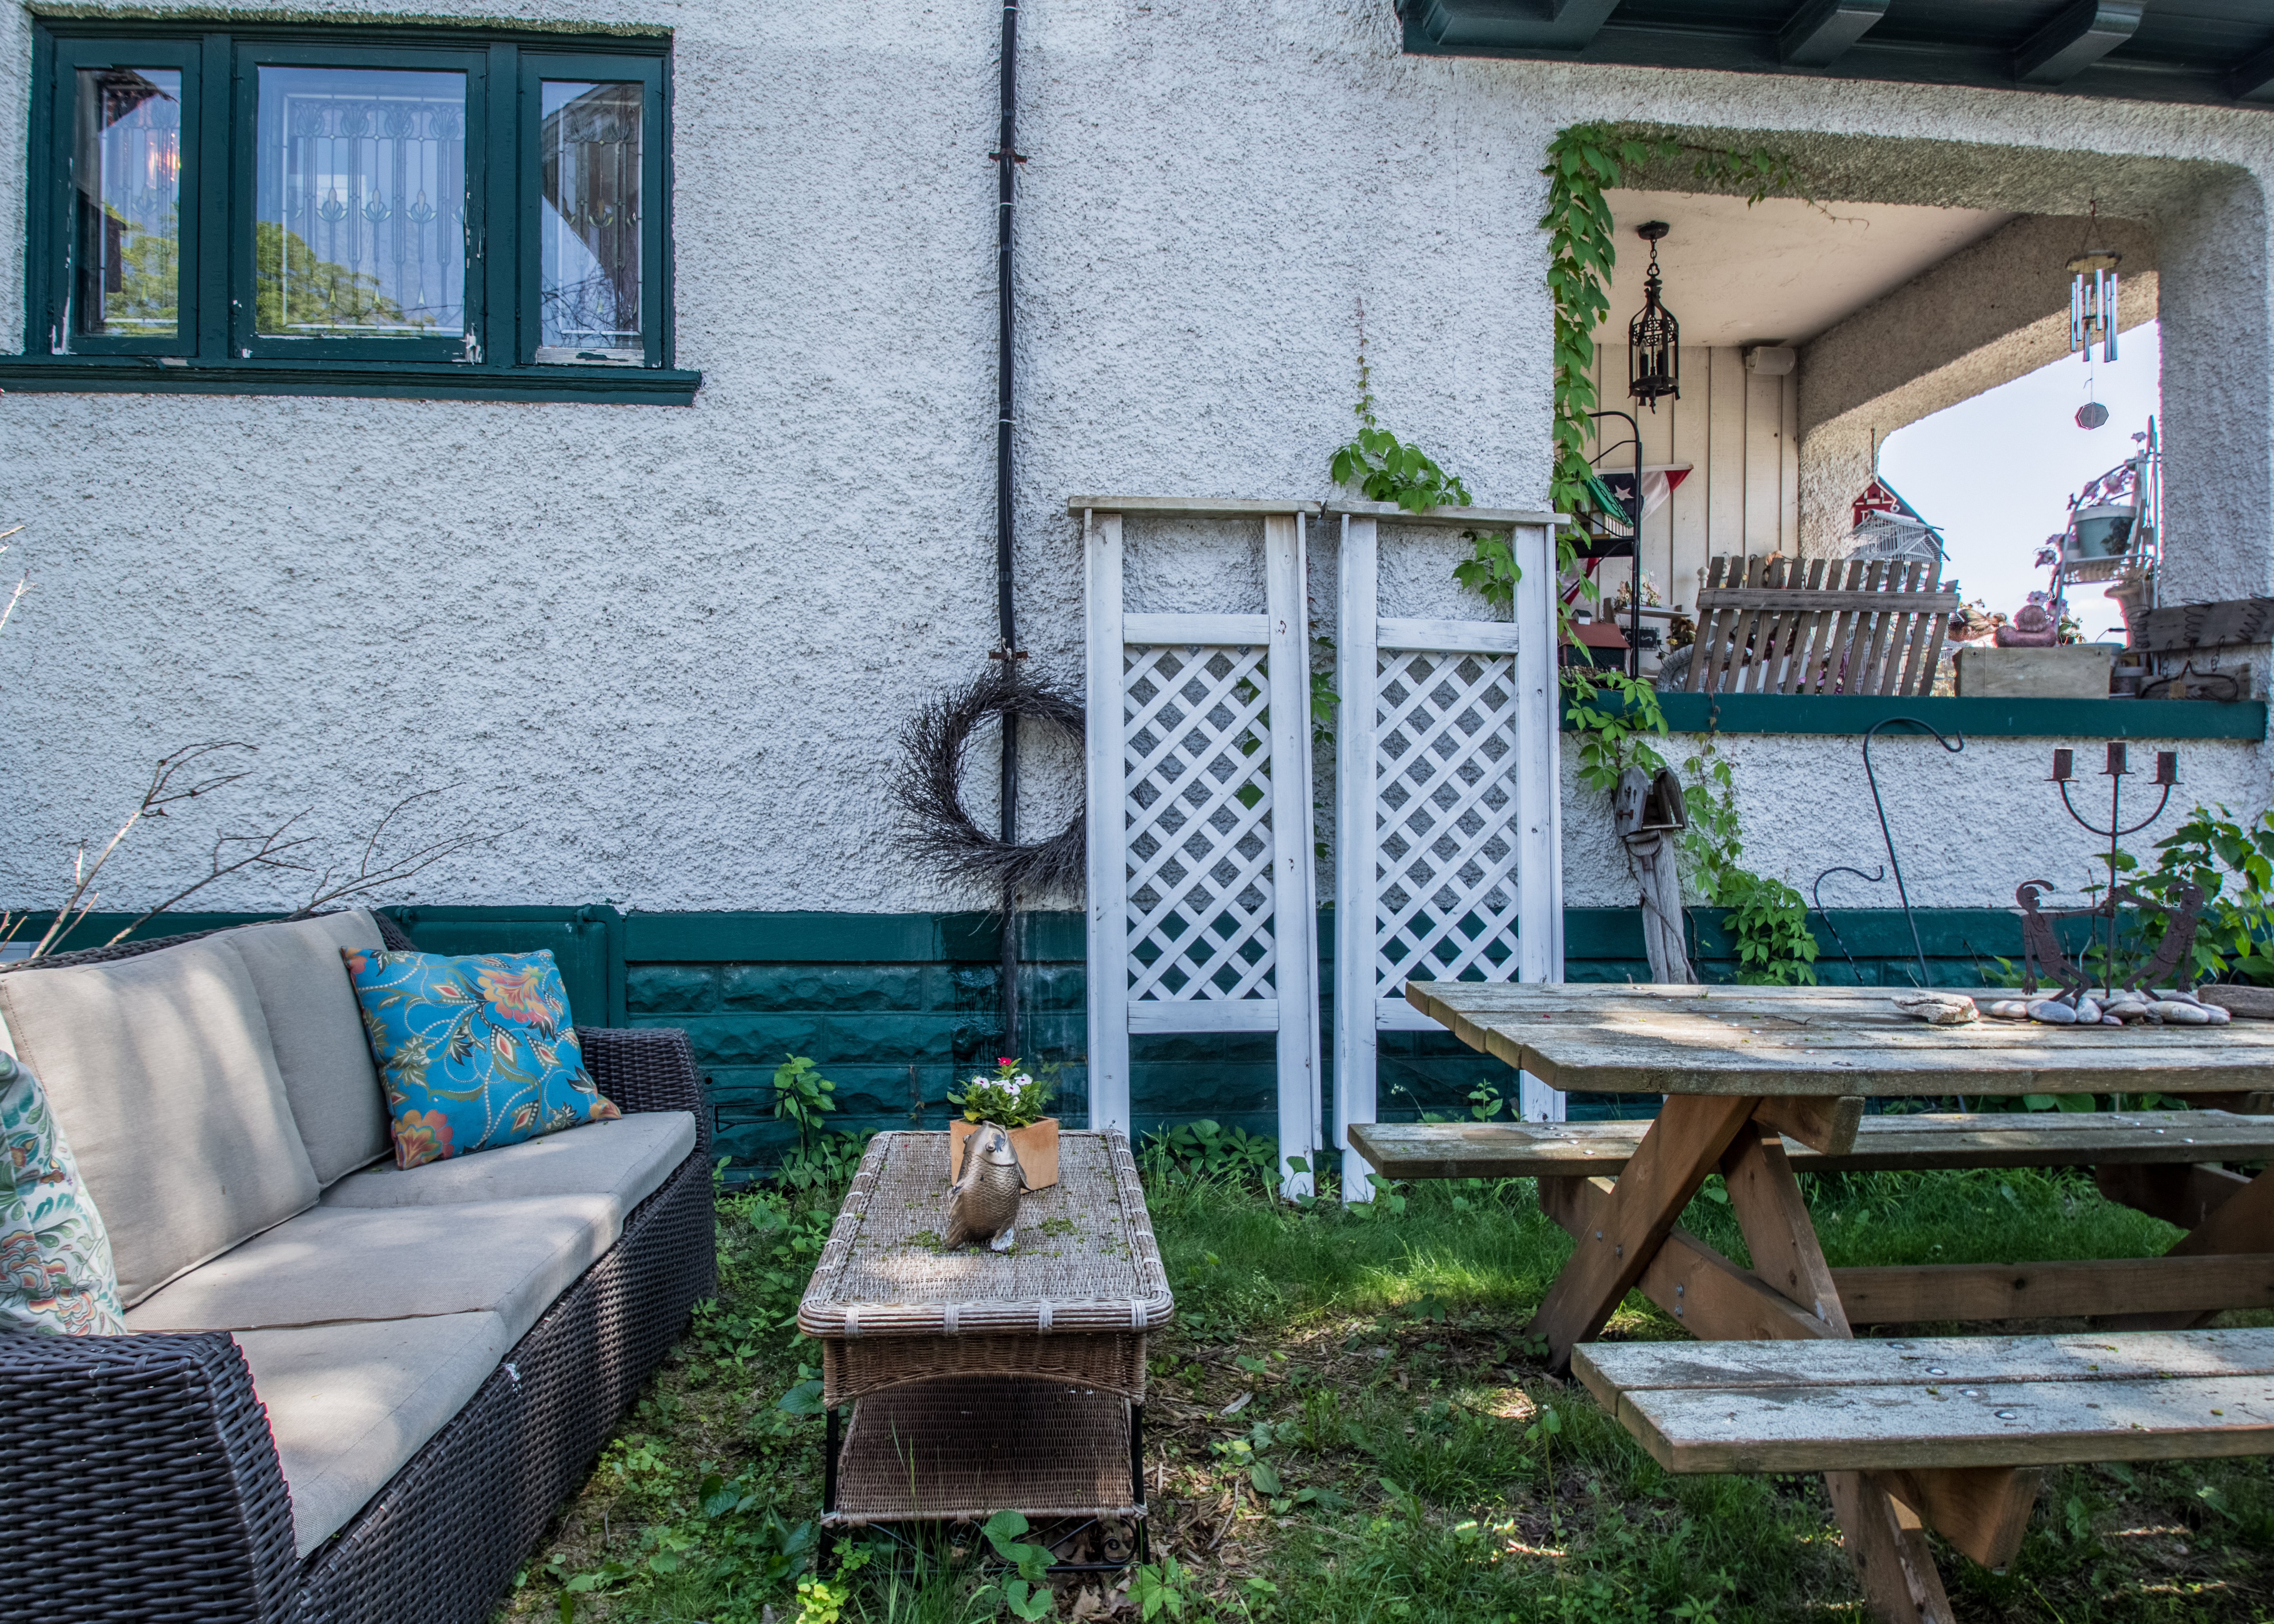 Additional outdoor entertaining space in side yard and large front porch